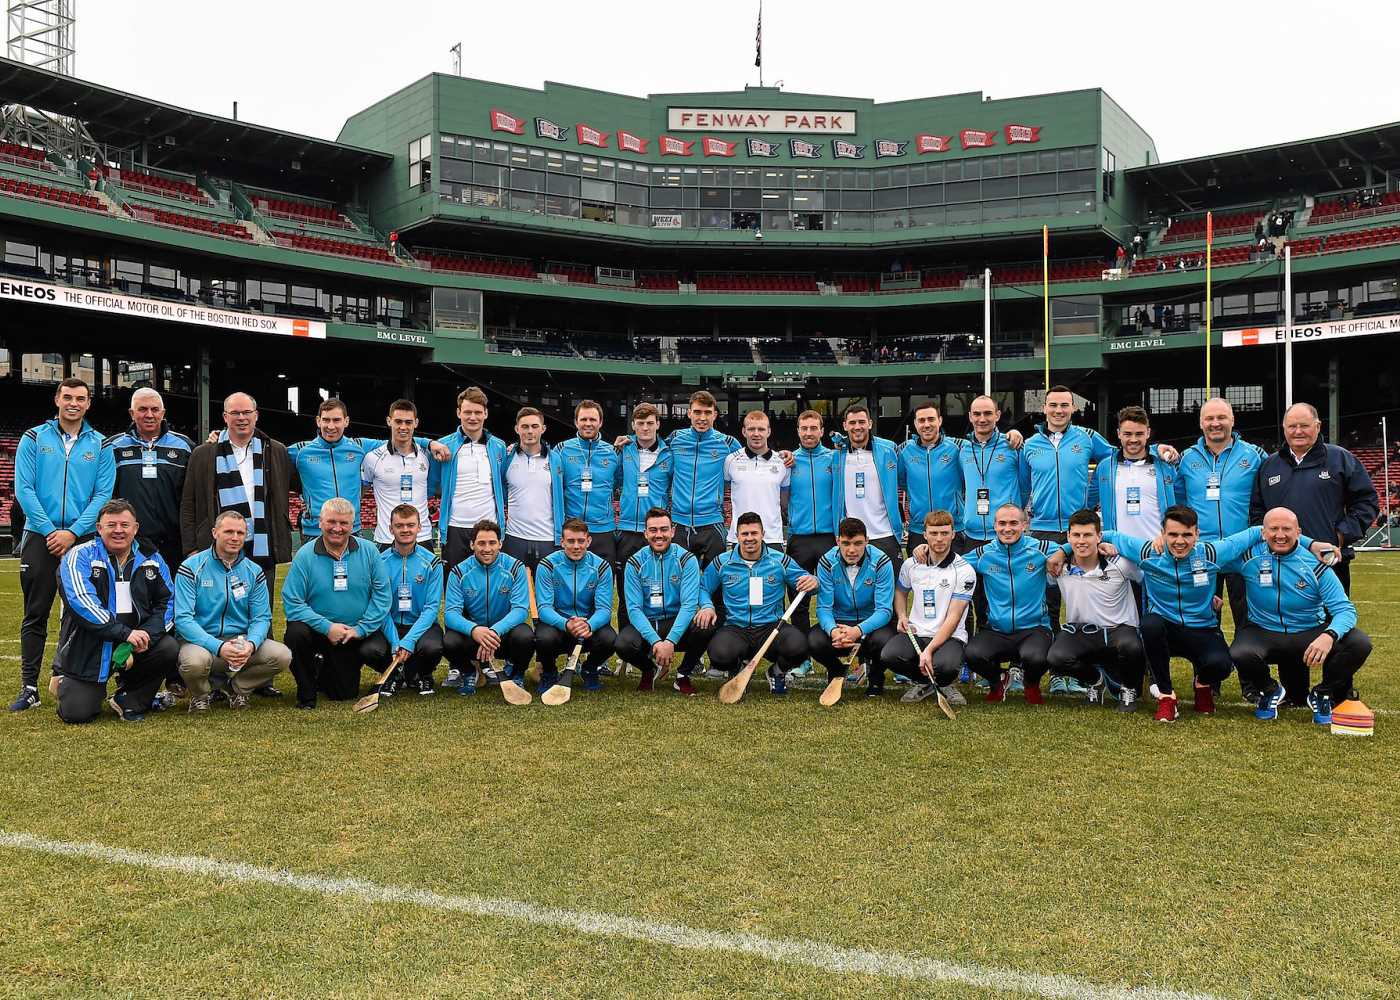 Double-header announced for the second AIG Fenway Hurling Classic and Irish Festival